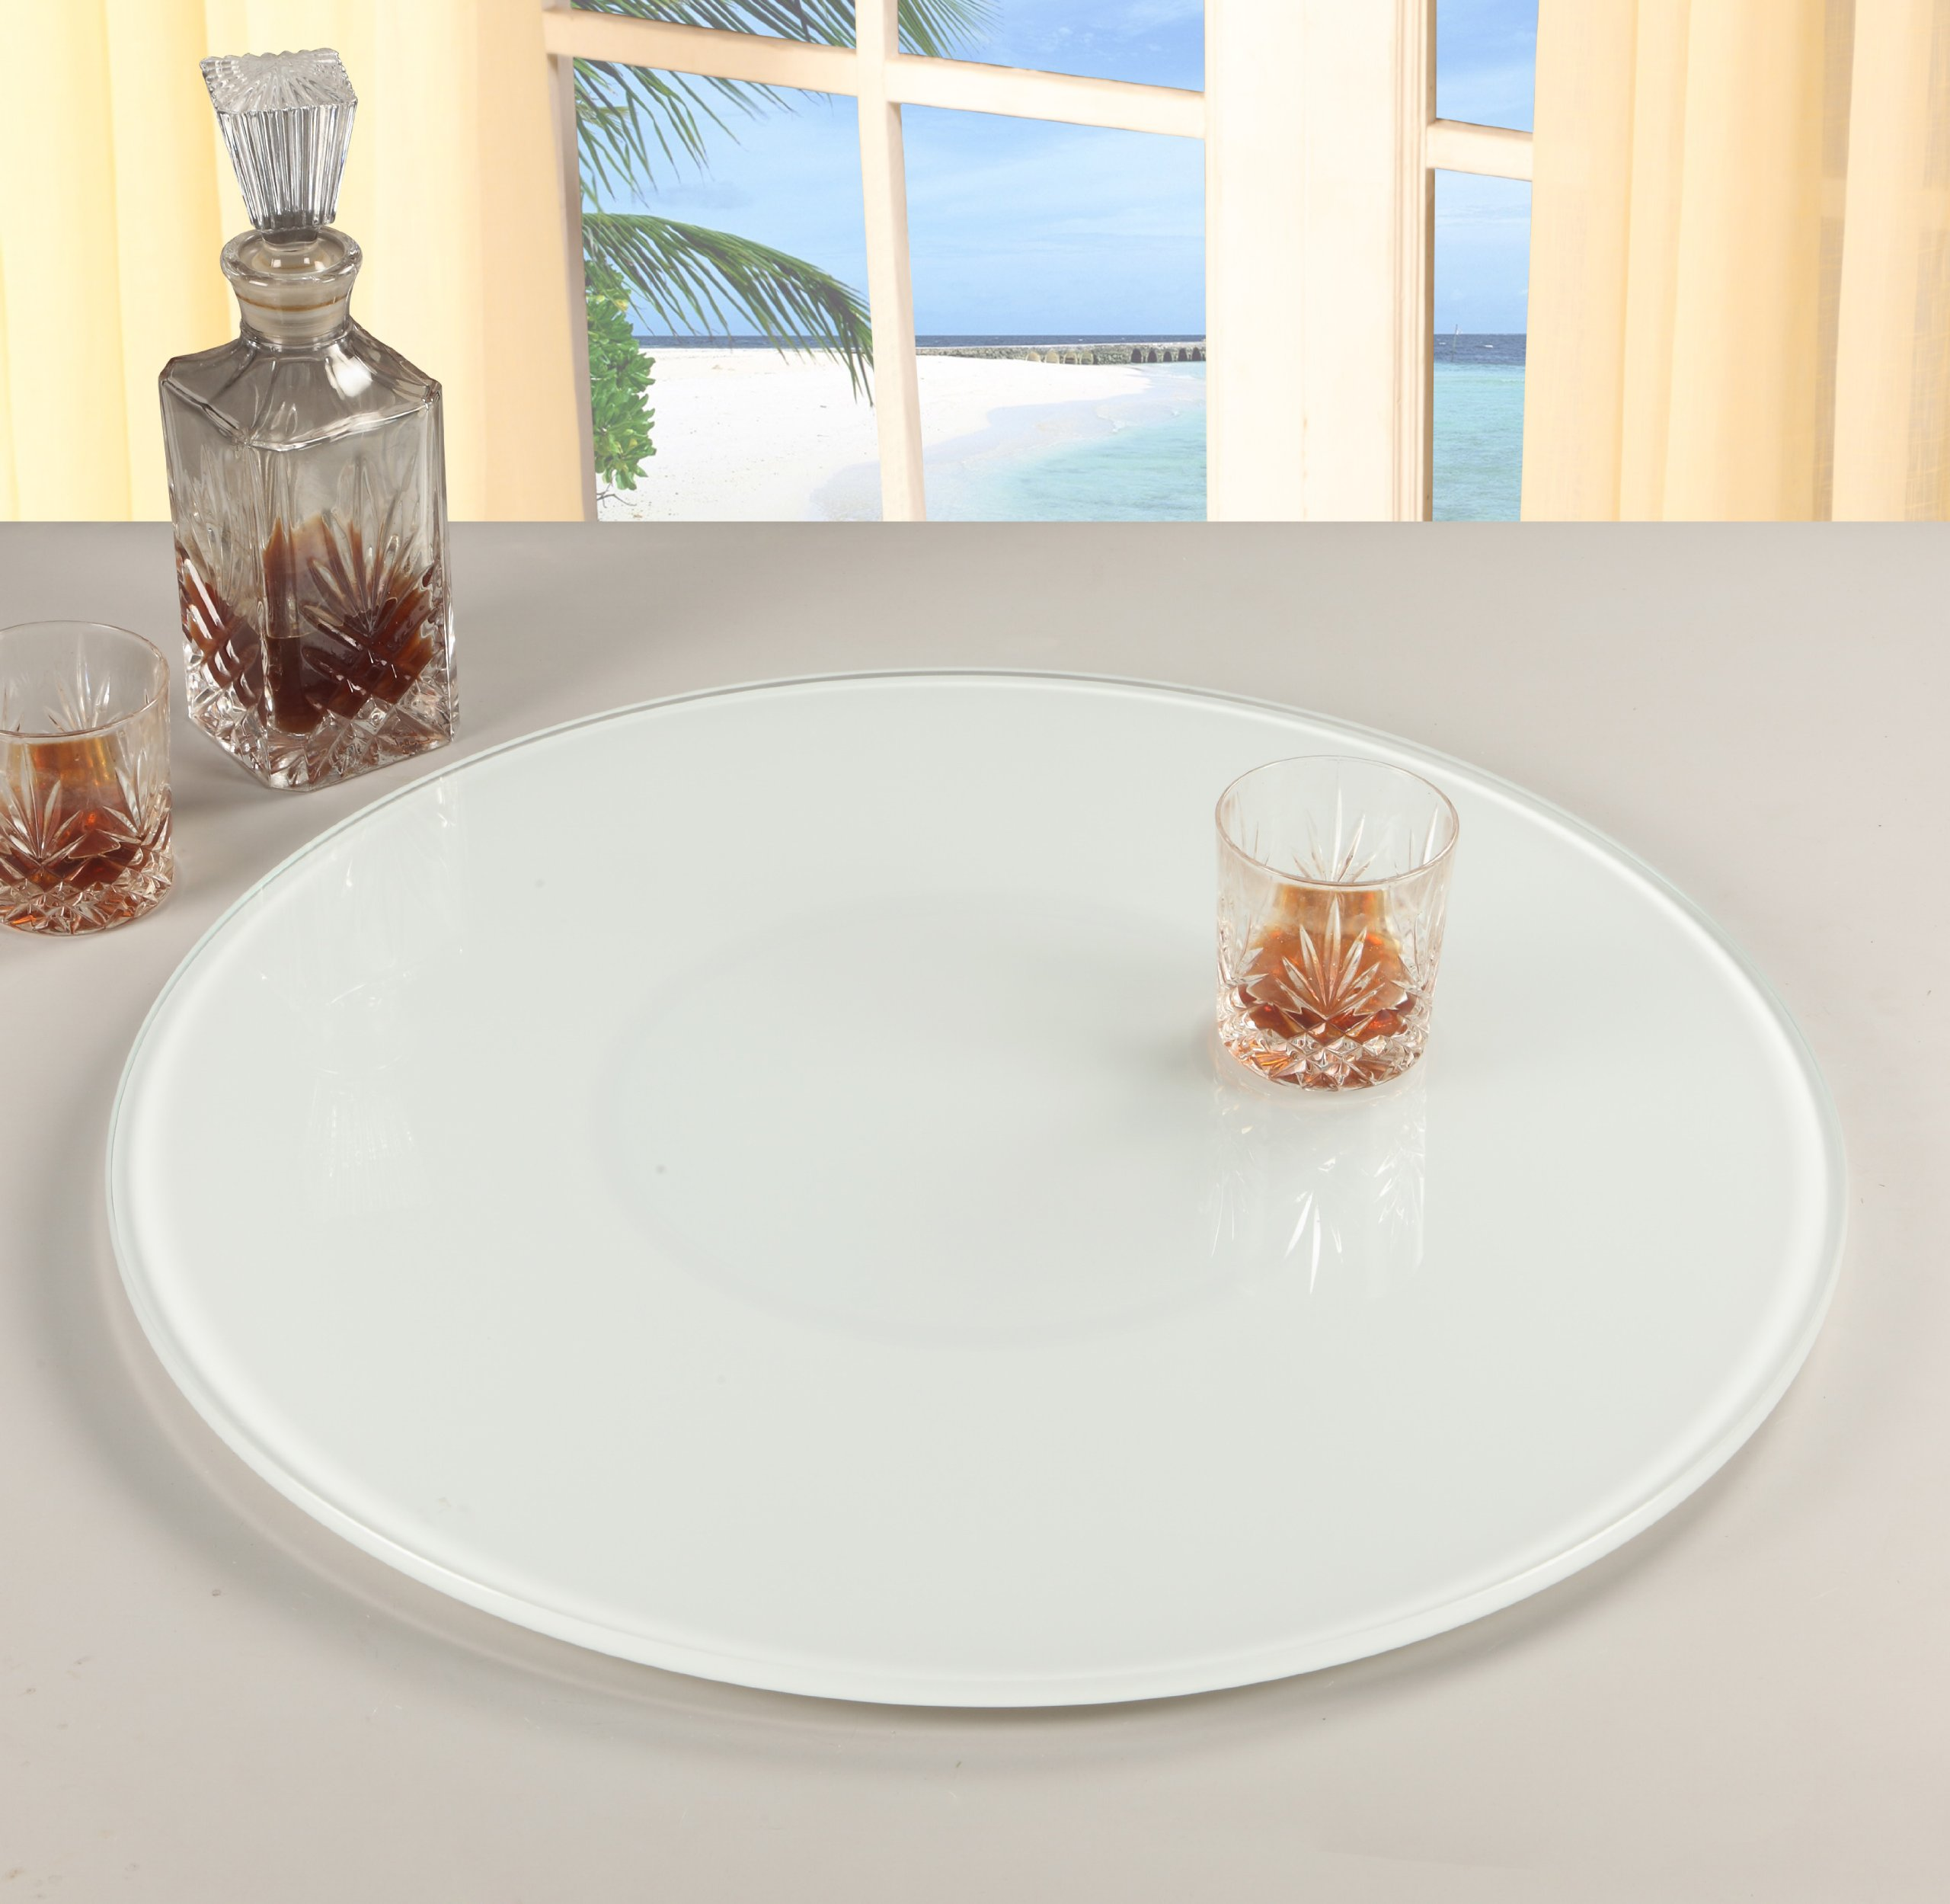 Chintaly Imports Lazy Susan Round Rotating Tray, 24-Inch, Glass/White